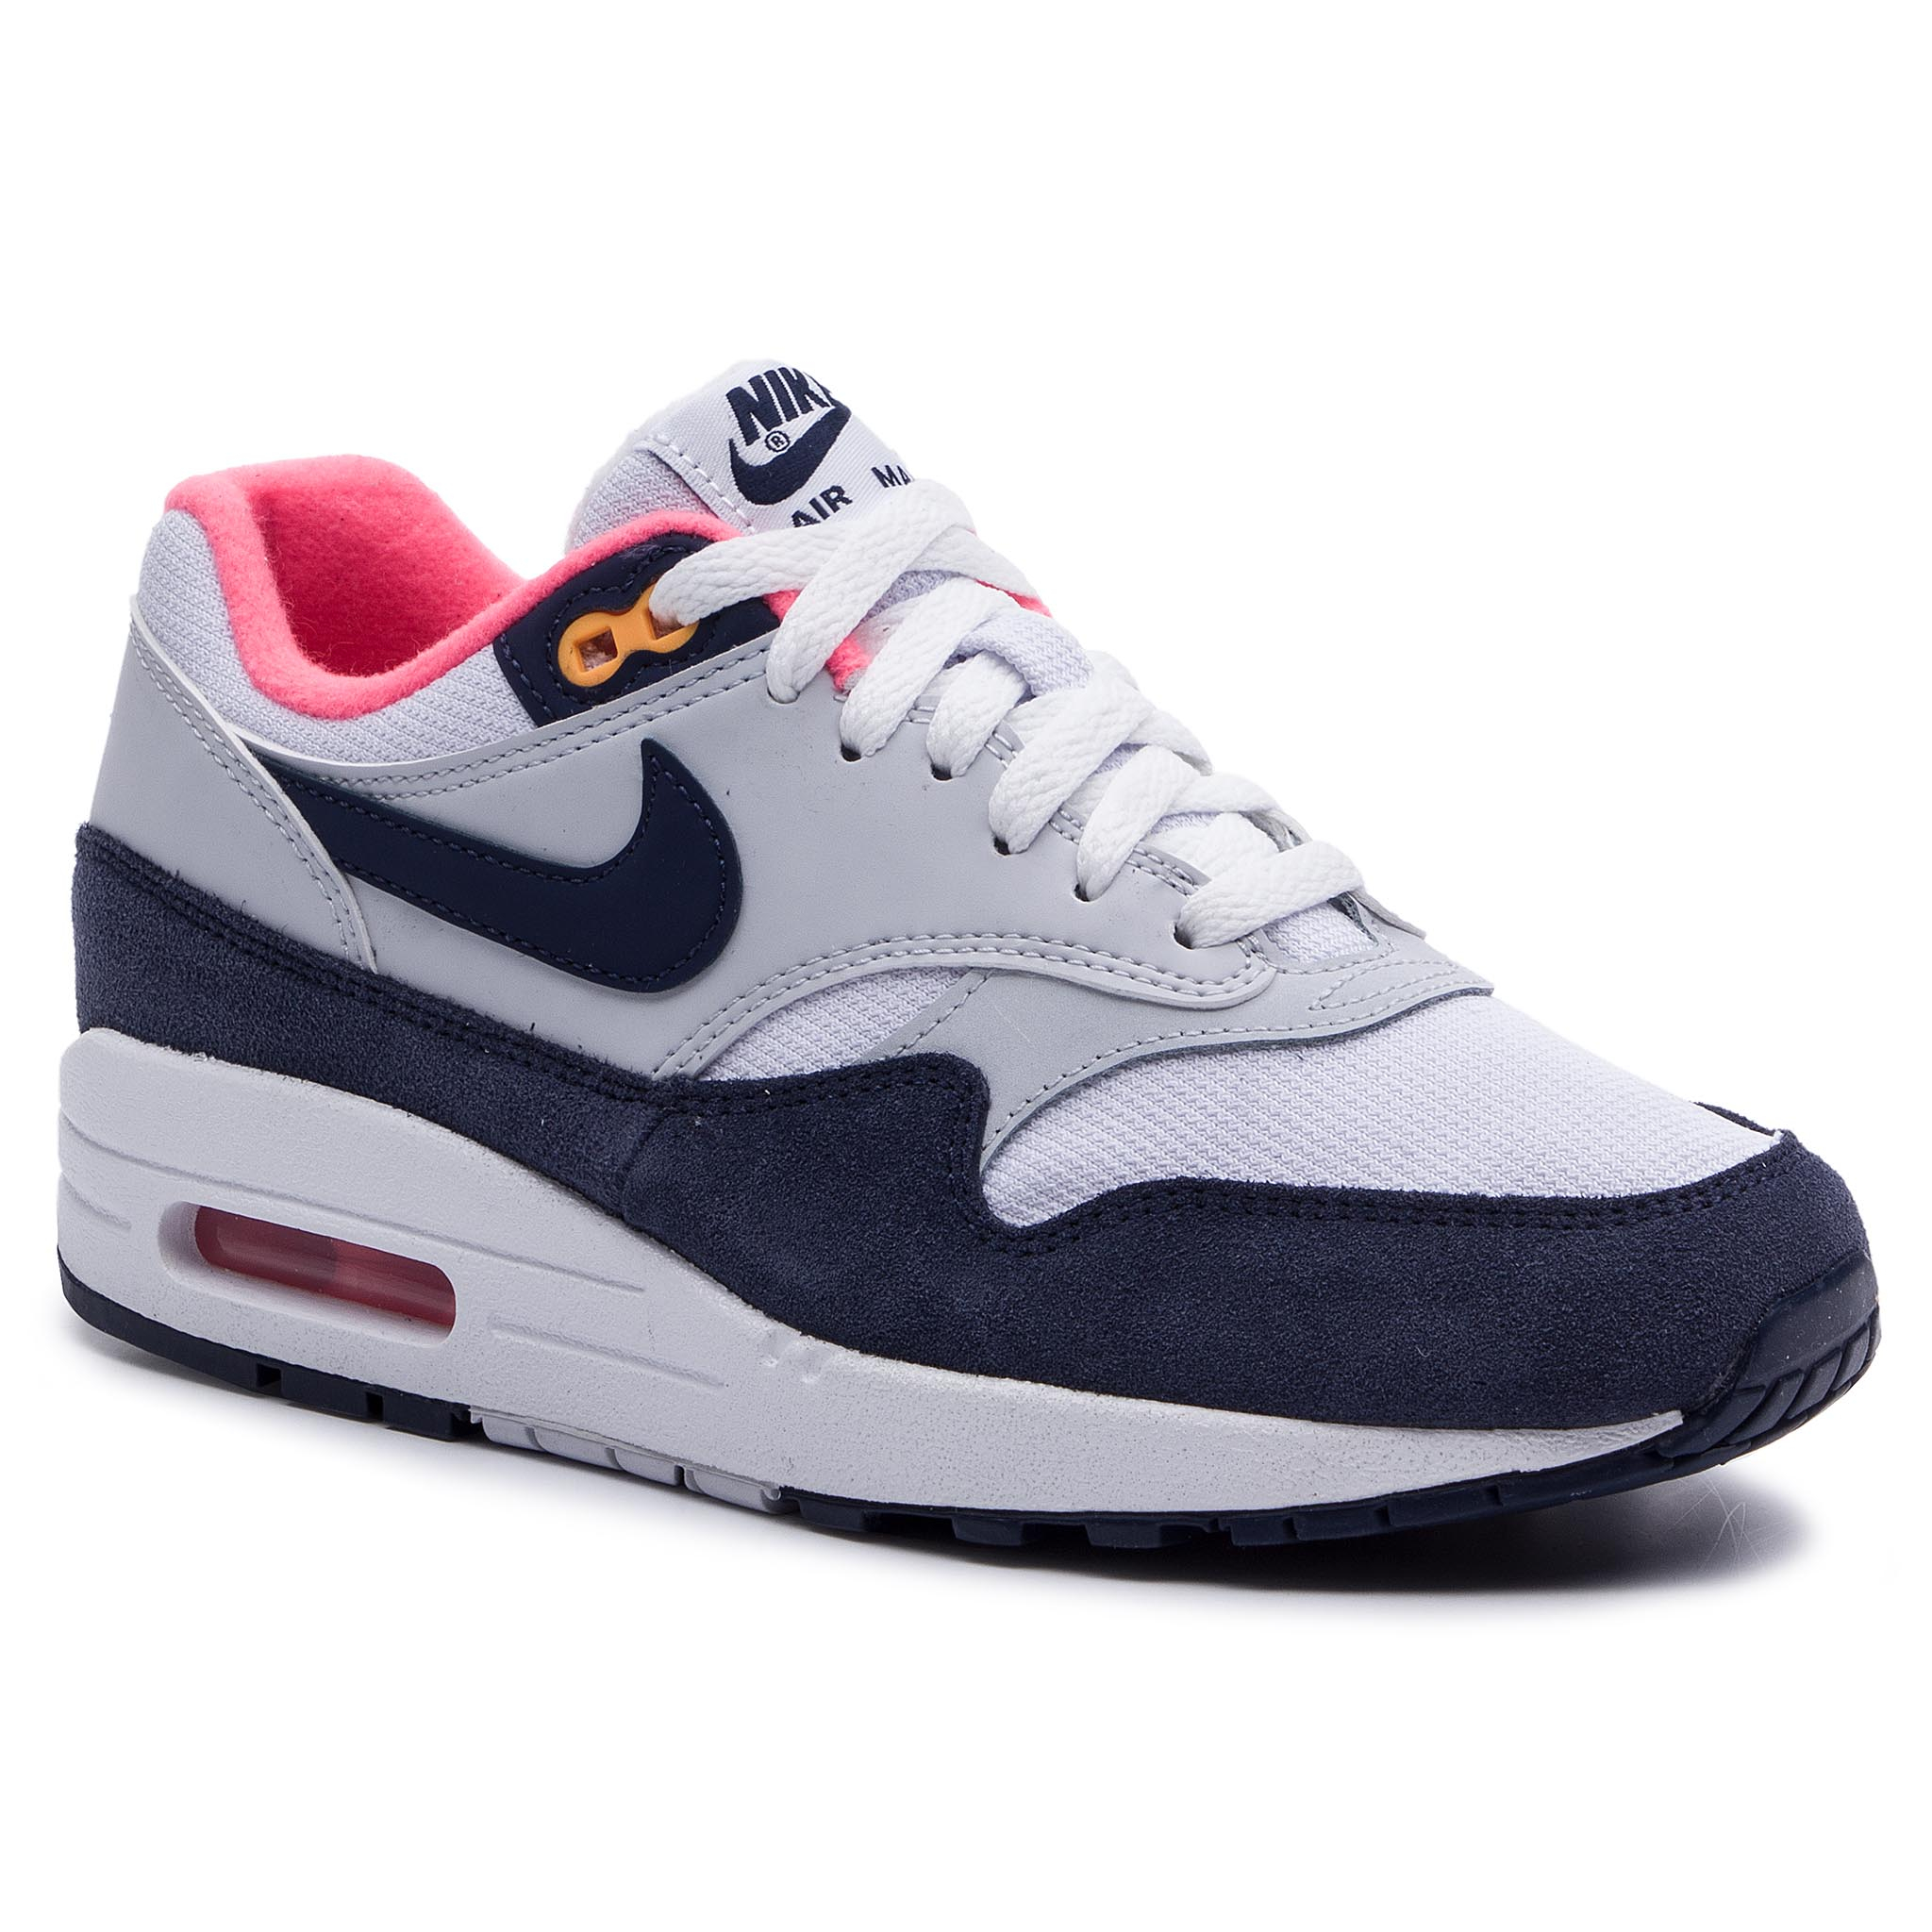 Pantofi NIKE - Air Max 1 319986 116 White/Midnight Navy